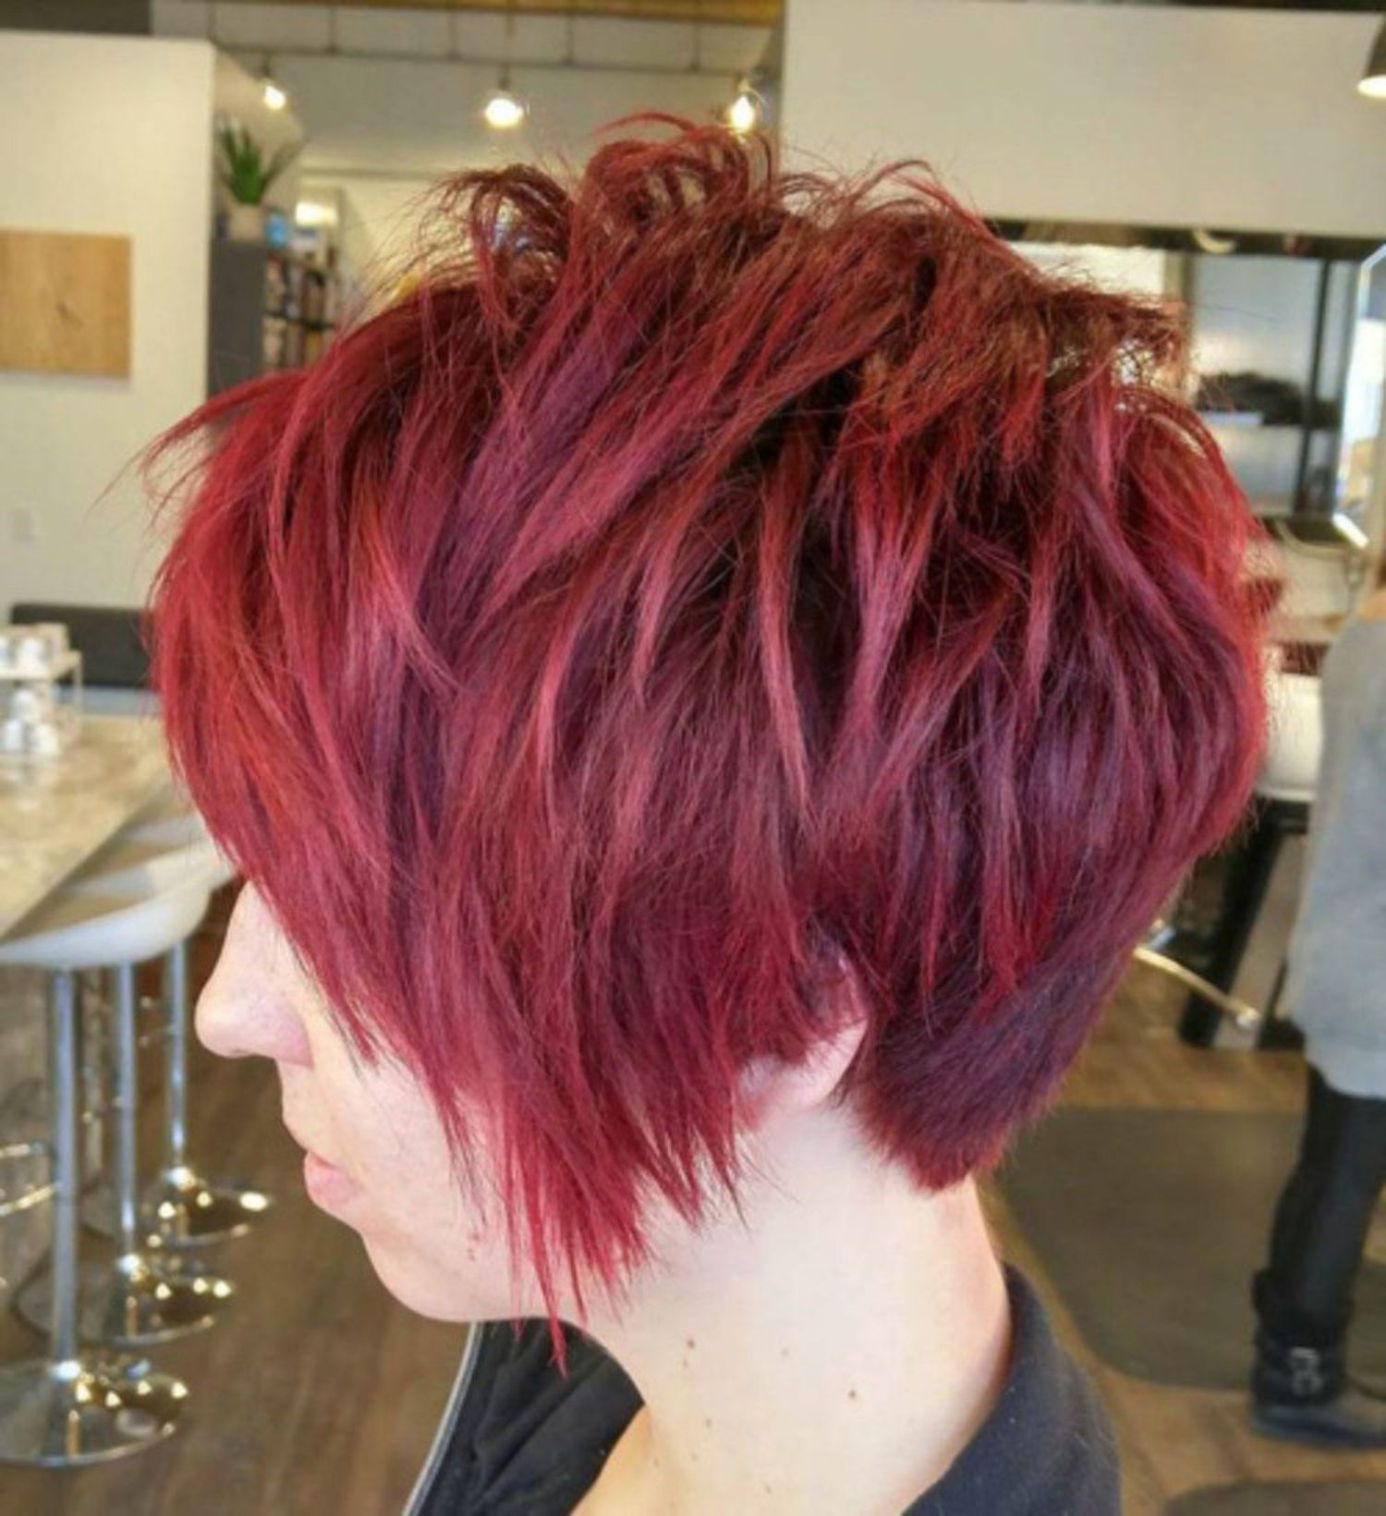 short shaggy spiky edgy pixie cuts and hairstyles hair styles